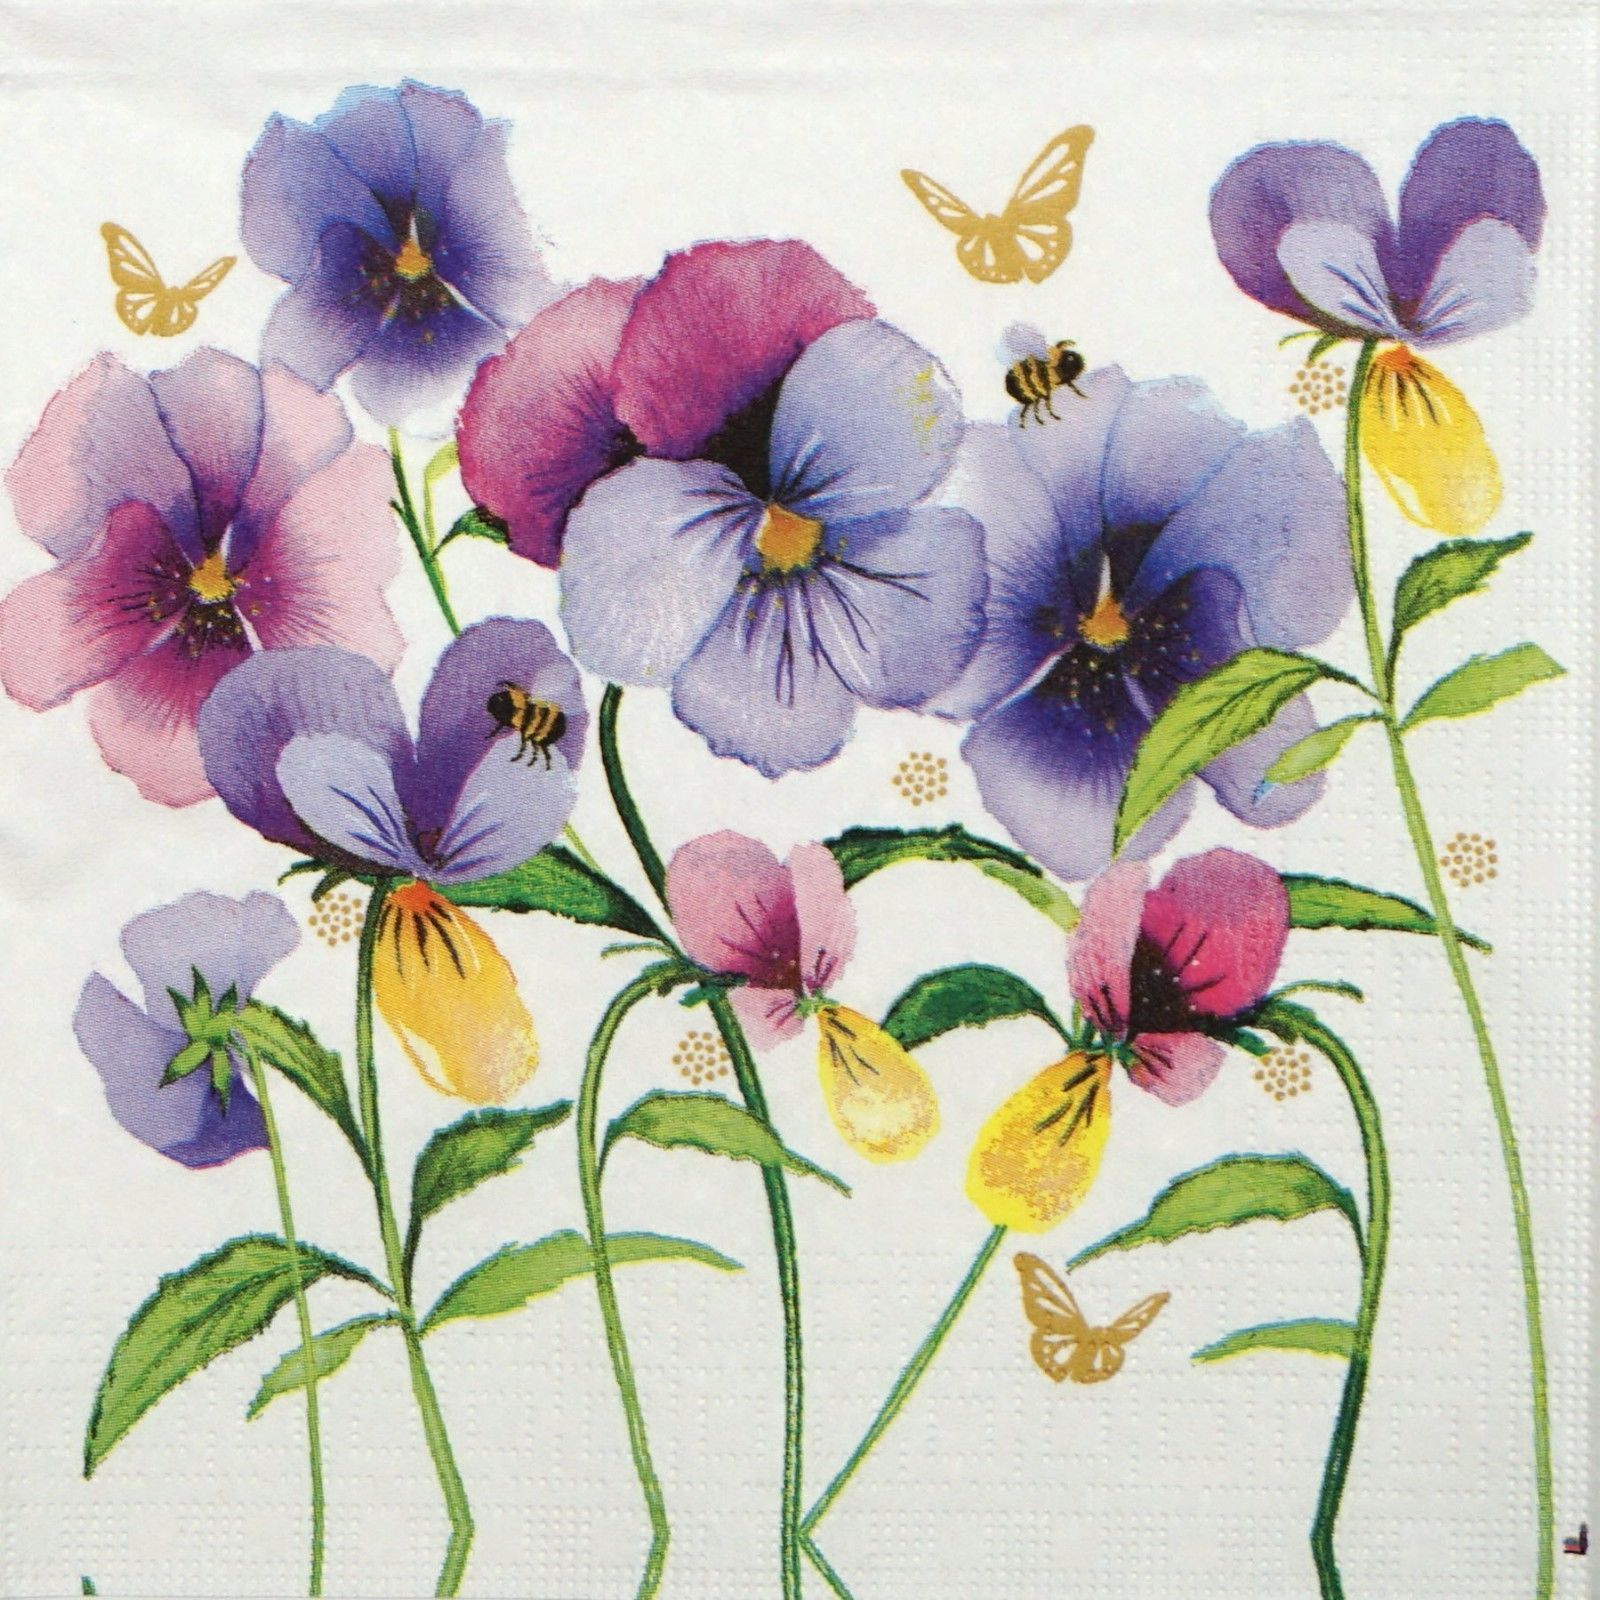 4x Paper Napkins for Decoupage Decopatch Craft Painted Pansy in Green